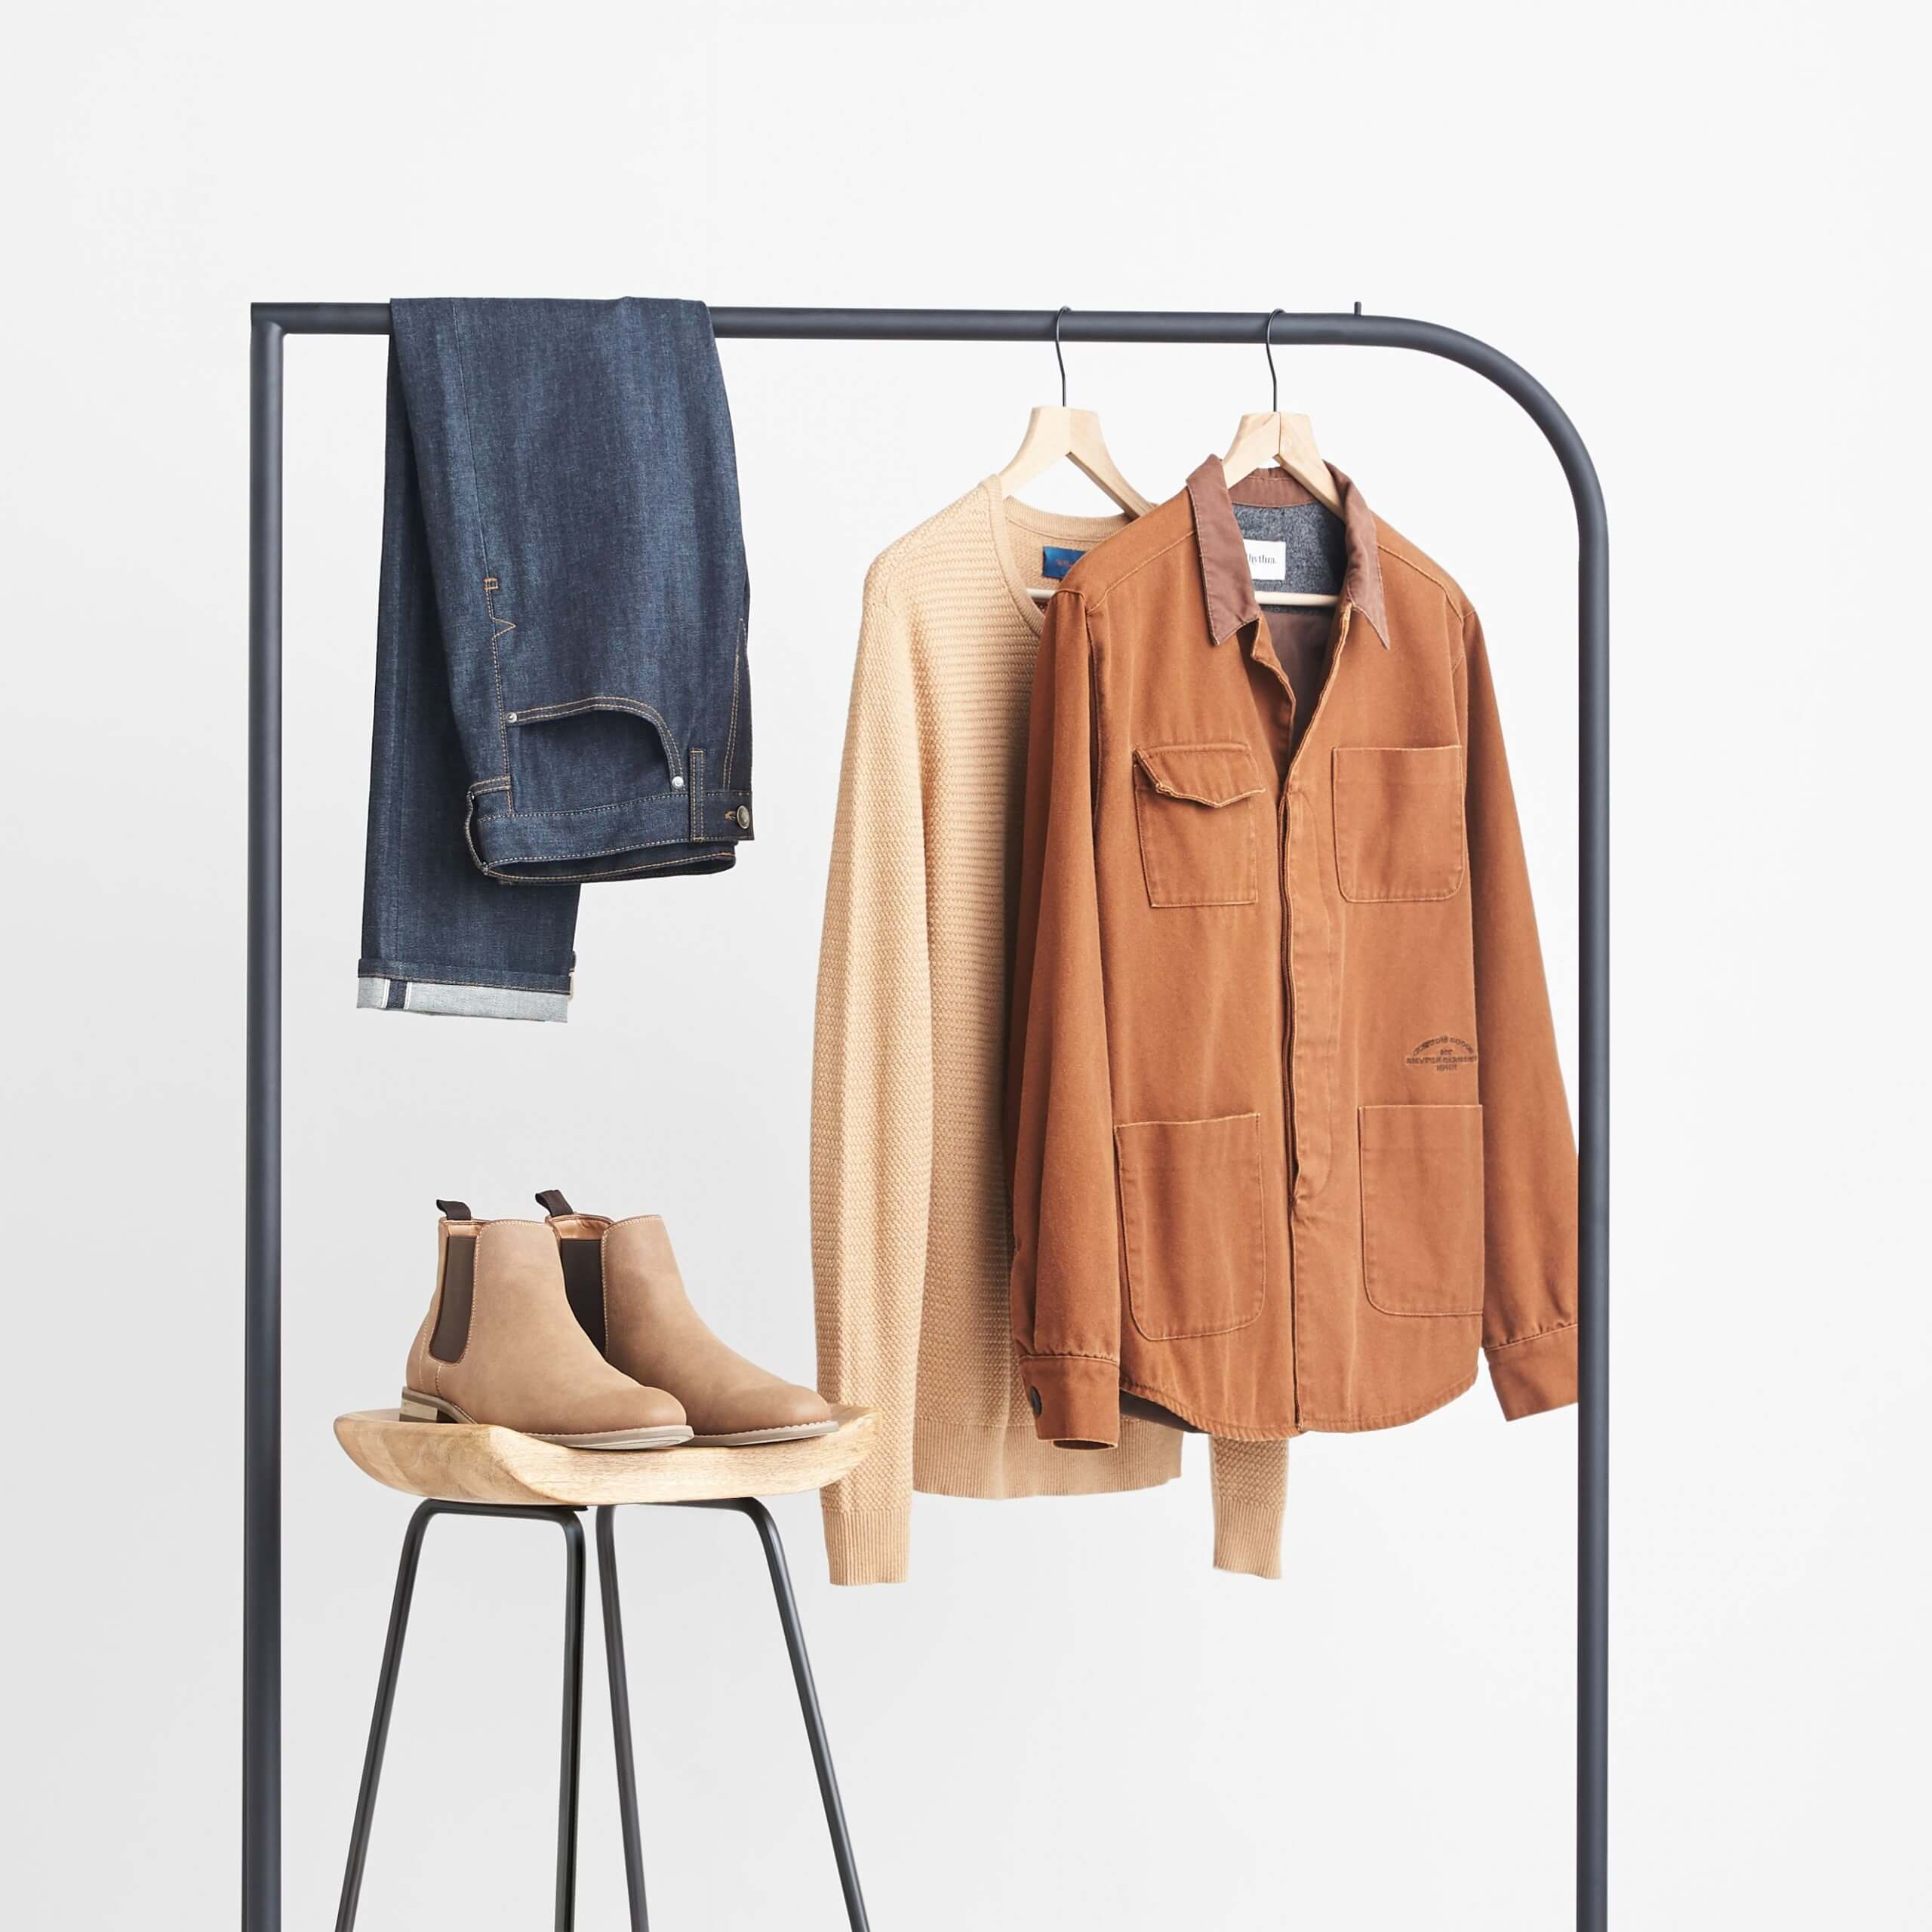 Stitch Fix Men's brown chore jacket, tan crewneck sweater and slim-fit dark wash jeans hanging on a black rack next to brown boots sitting on a wooden stool.